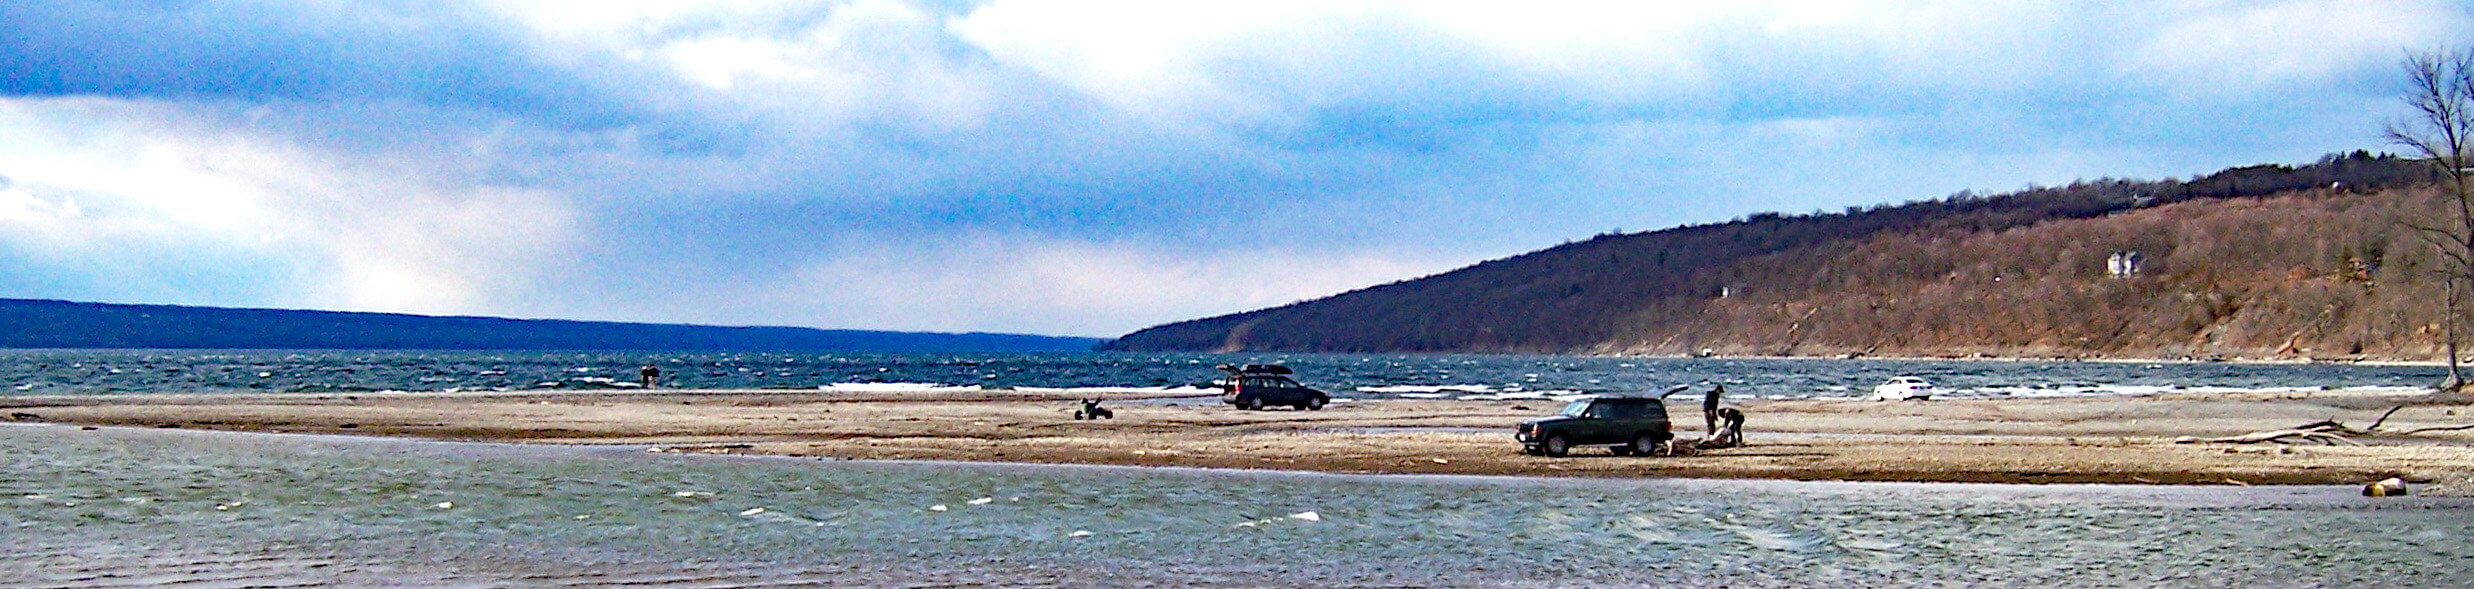 Low lake level at Myers Point on Cayuga Lake during winter